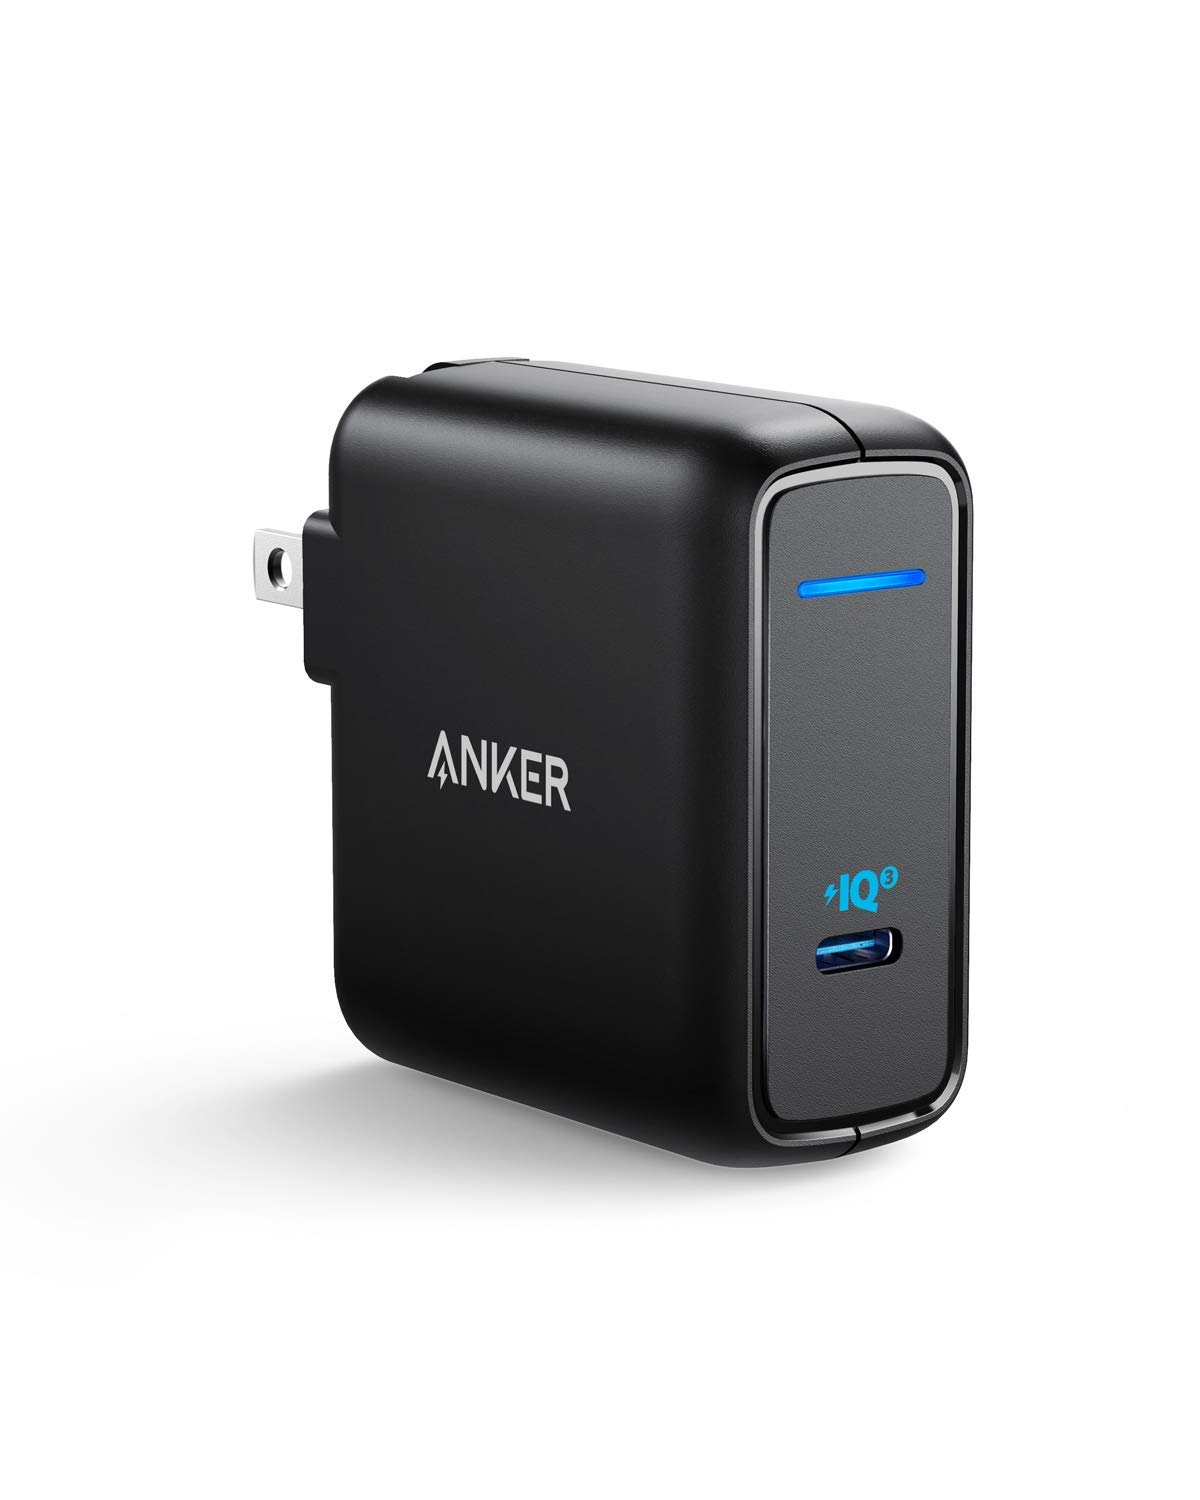 USB C Charger, Anker 60W Power Delivery Fast Charger [PIQ 3.0 & GaN], PowerPort Atom III Power Adapter for iPhone 11/Pro/Max/XR/XS/X, USB-C Laptops, MacBook Pro/Air, iPad Pro, Galaxy, Pixel and More by Anker